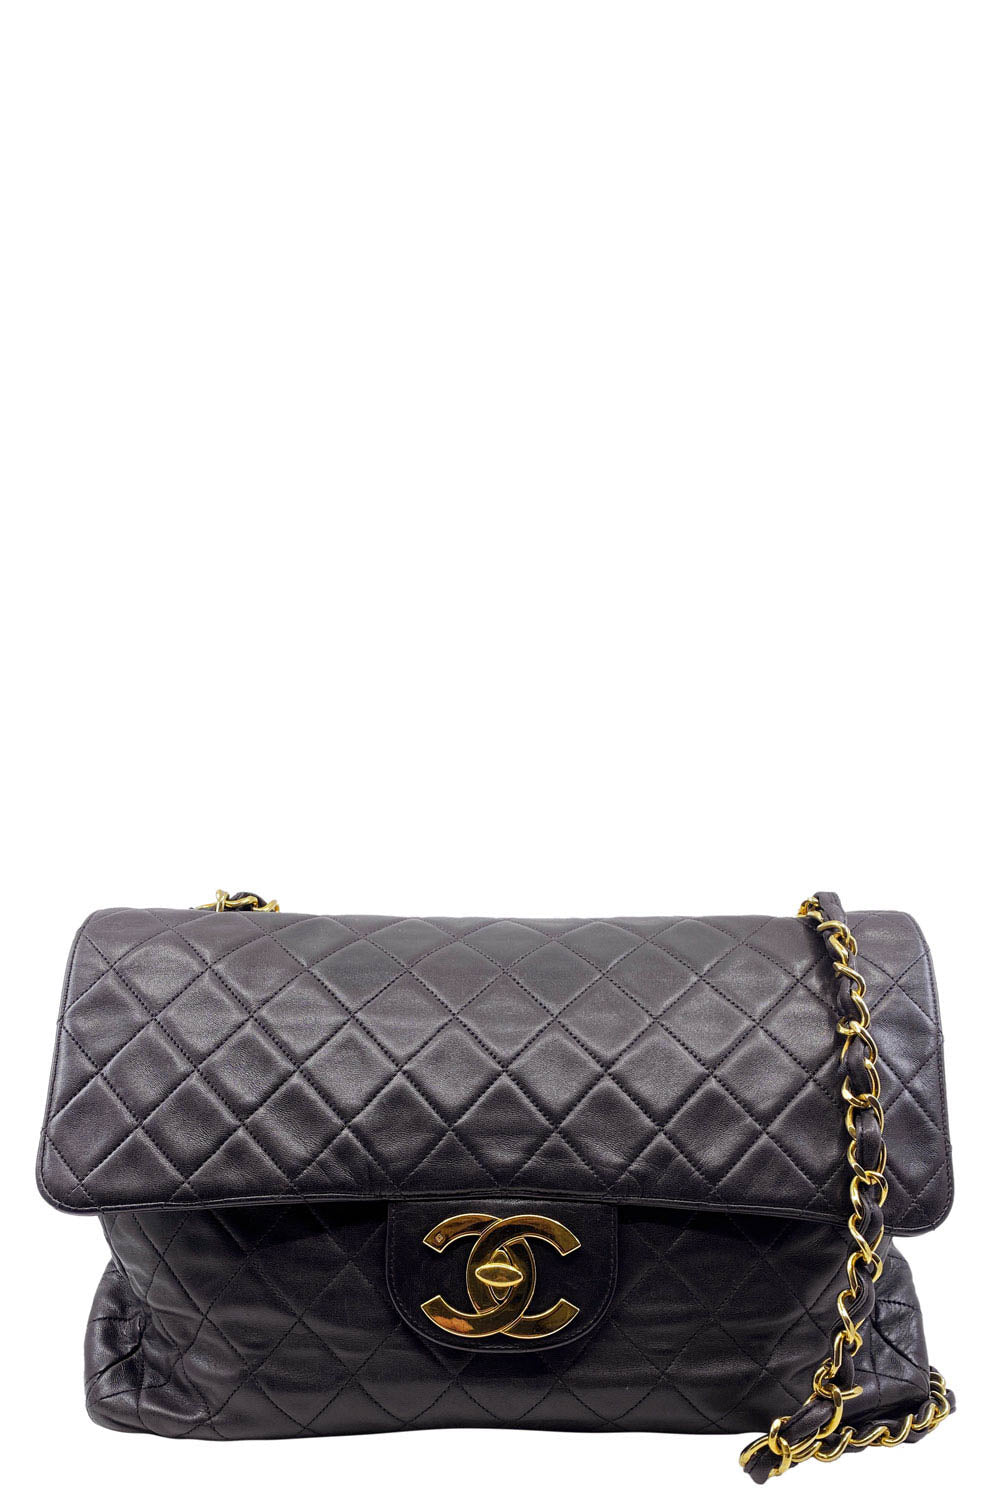 CHANEL Vintage Flap Bag Maxi Jumbo